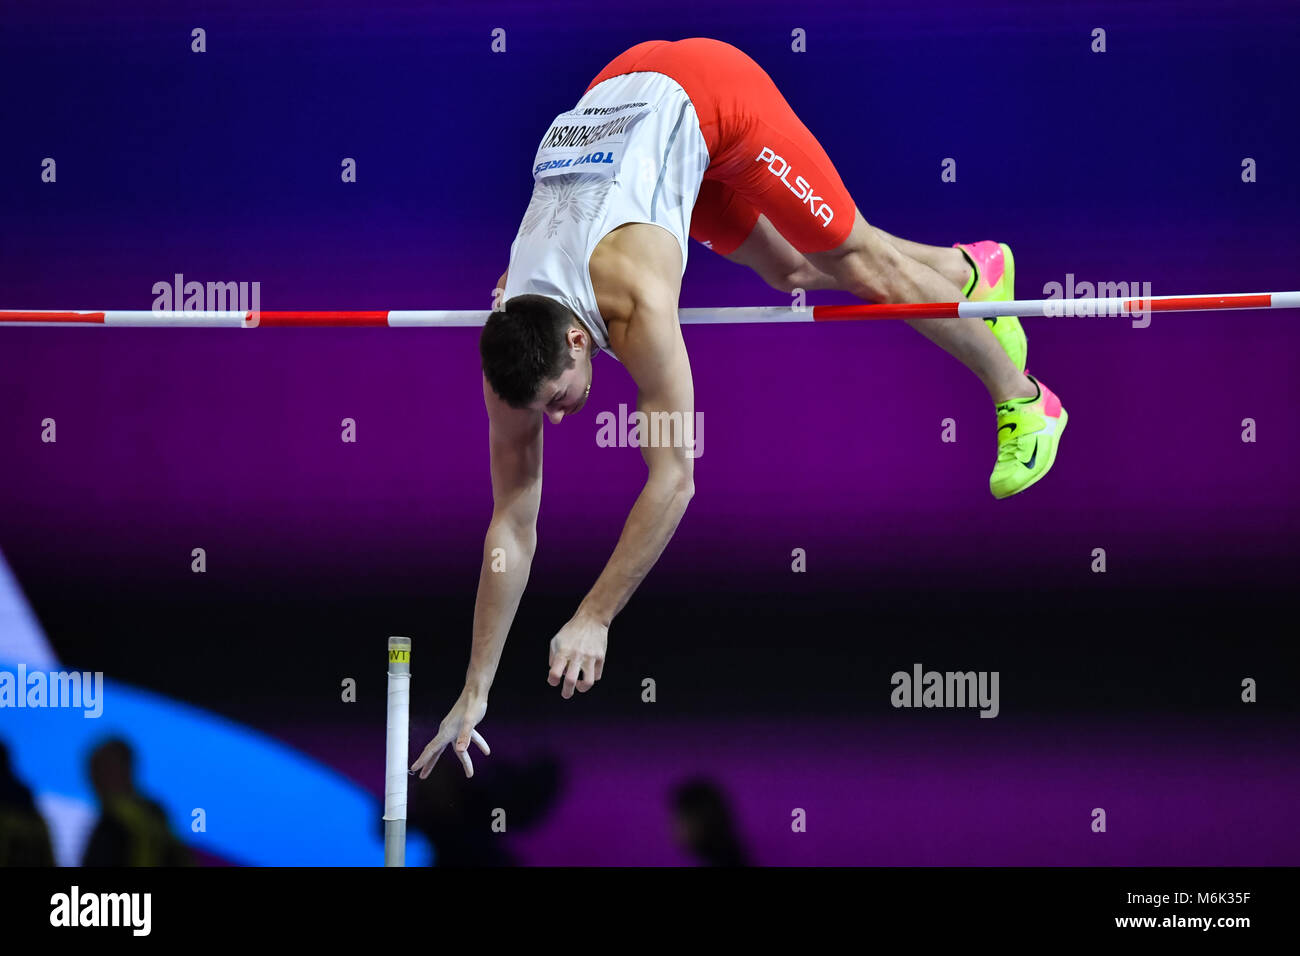 Birmingham, UK. 4th Mar, 2018. Pawel Wojciechowski (POL) in Men's Pole Vault Final during IAAF World Indoor - Stock Image